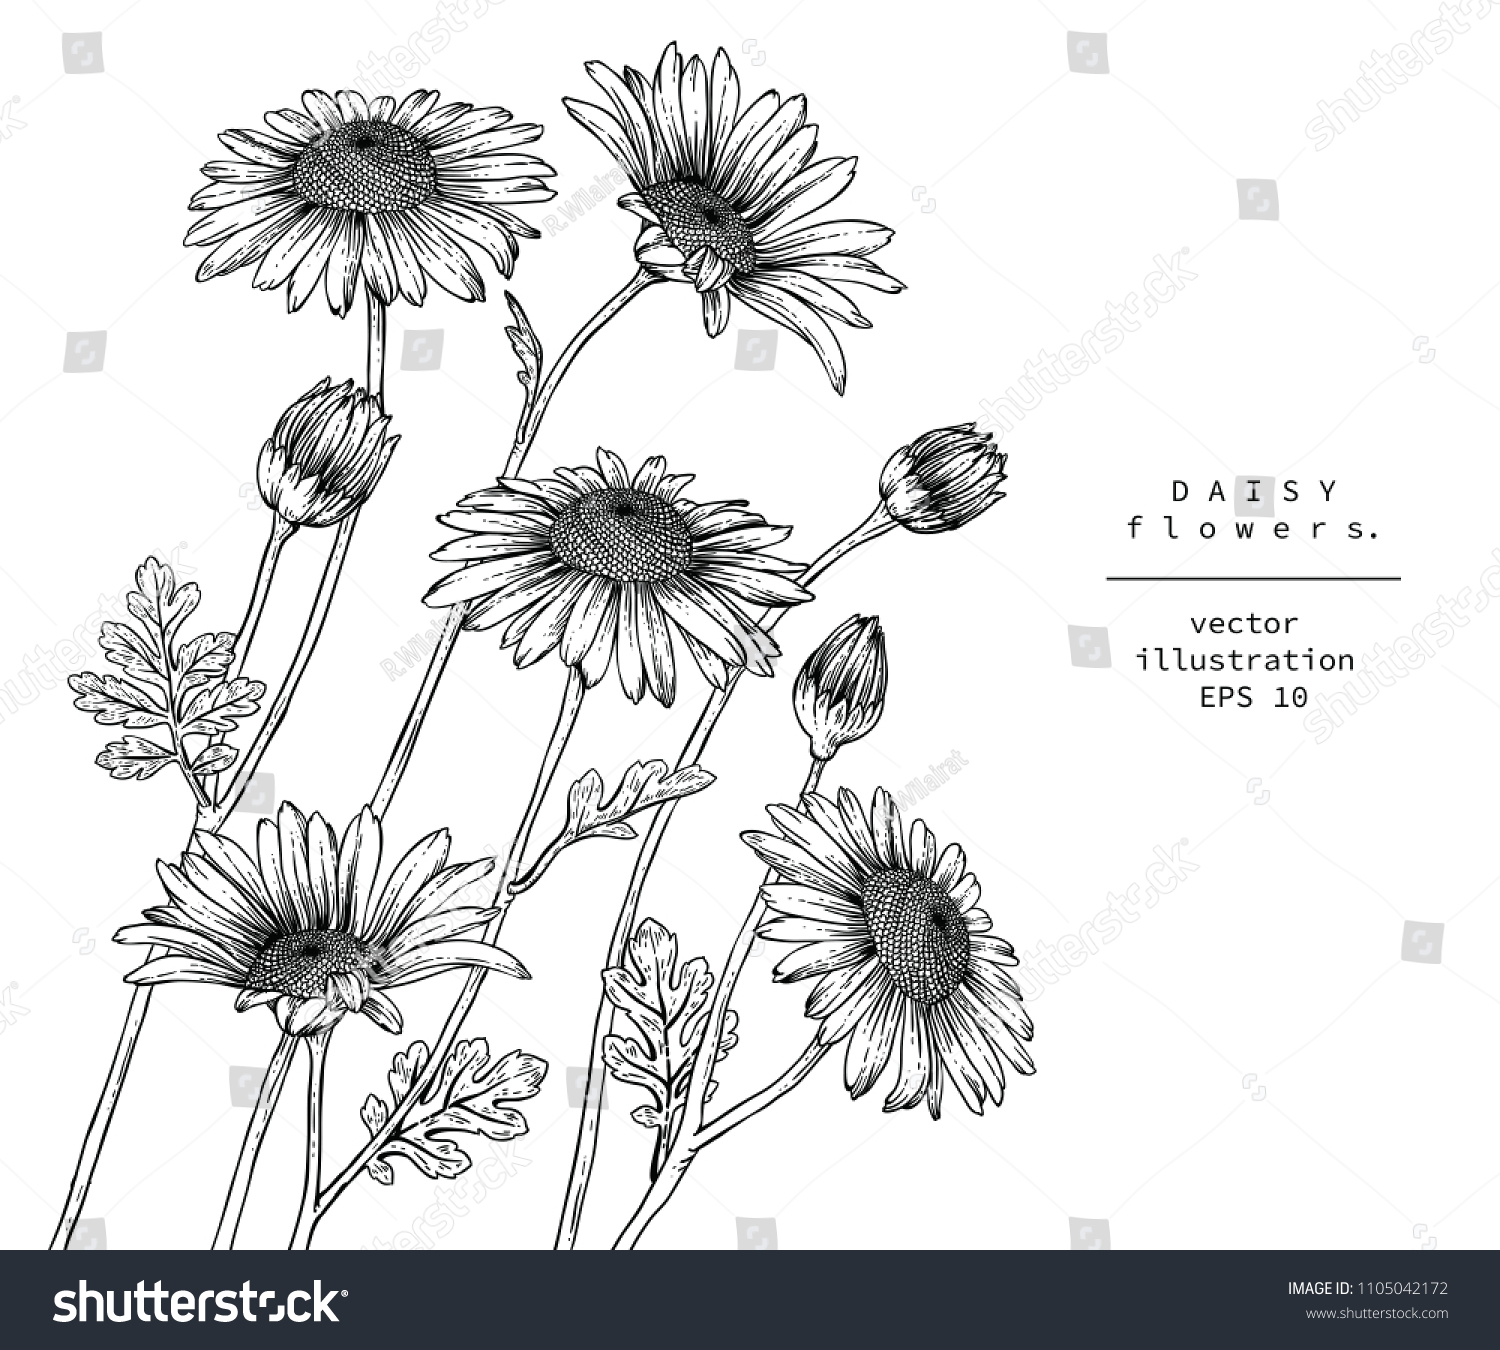 Sketch Floral Botany Collection Daisy Flower Stock Vector Royalty